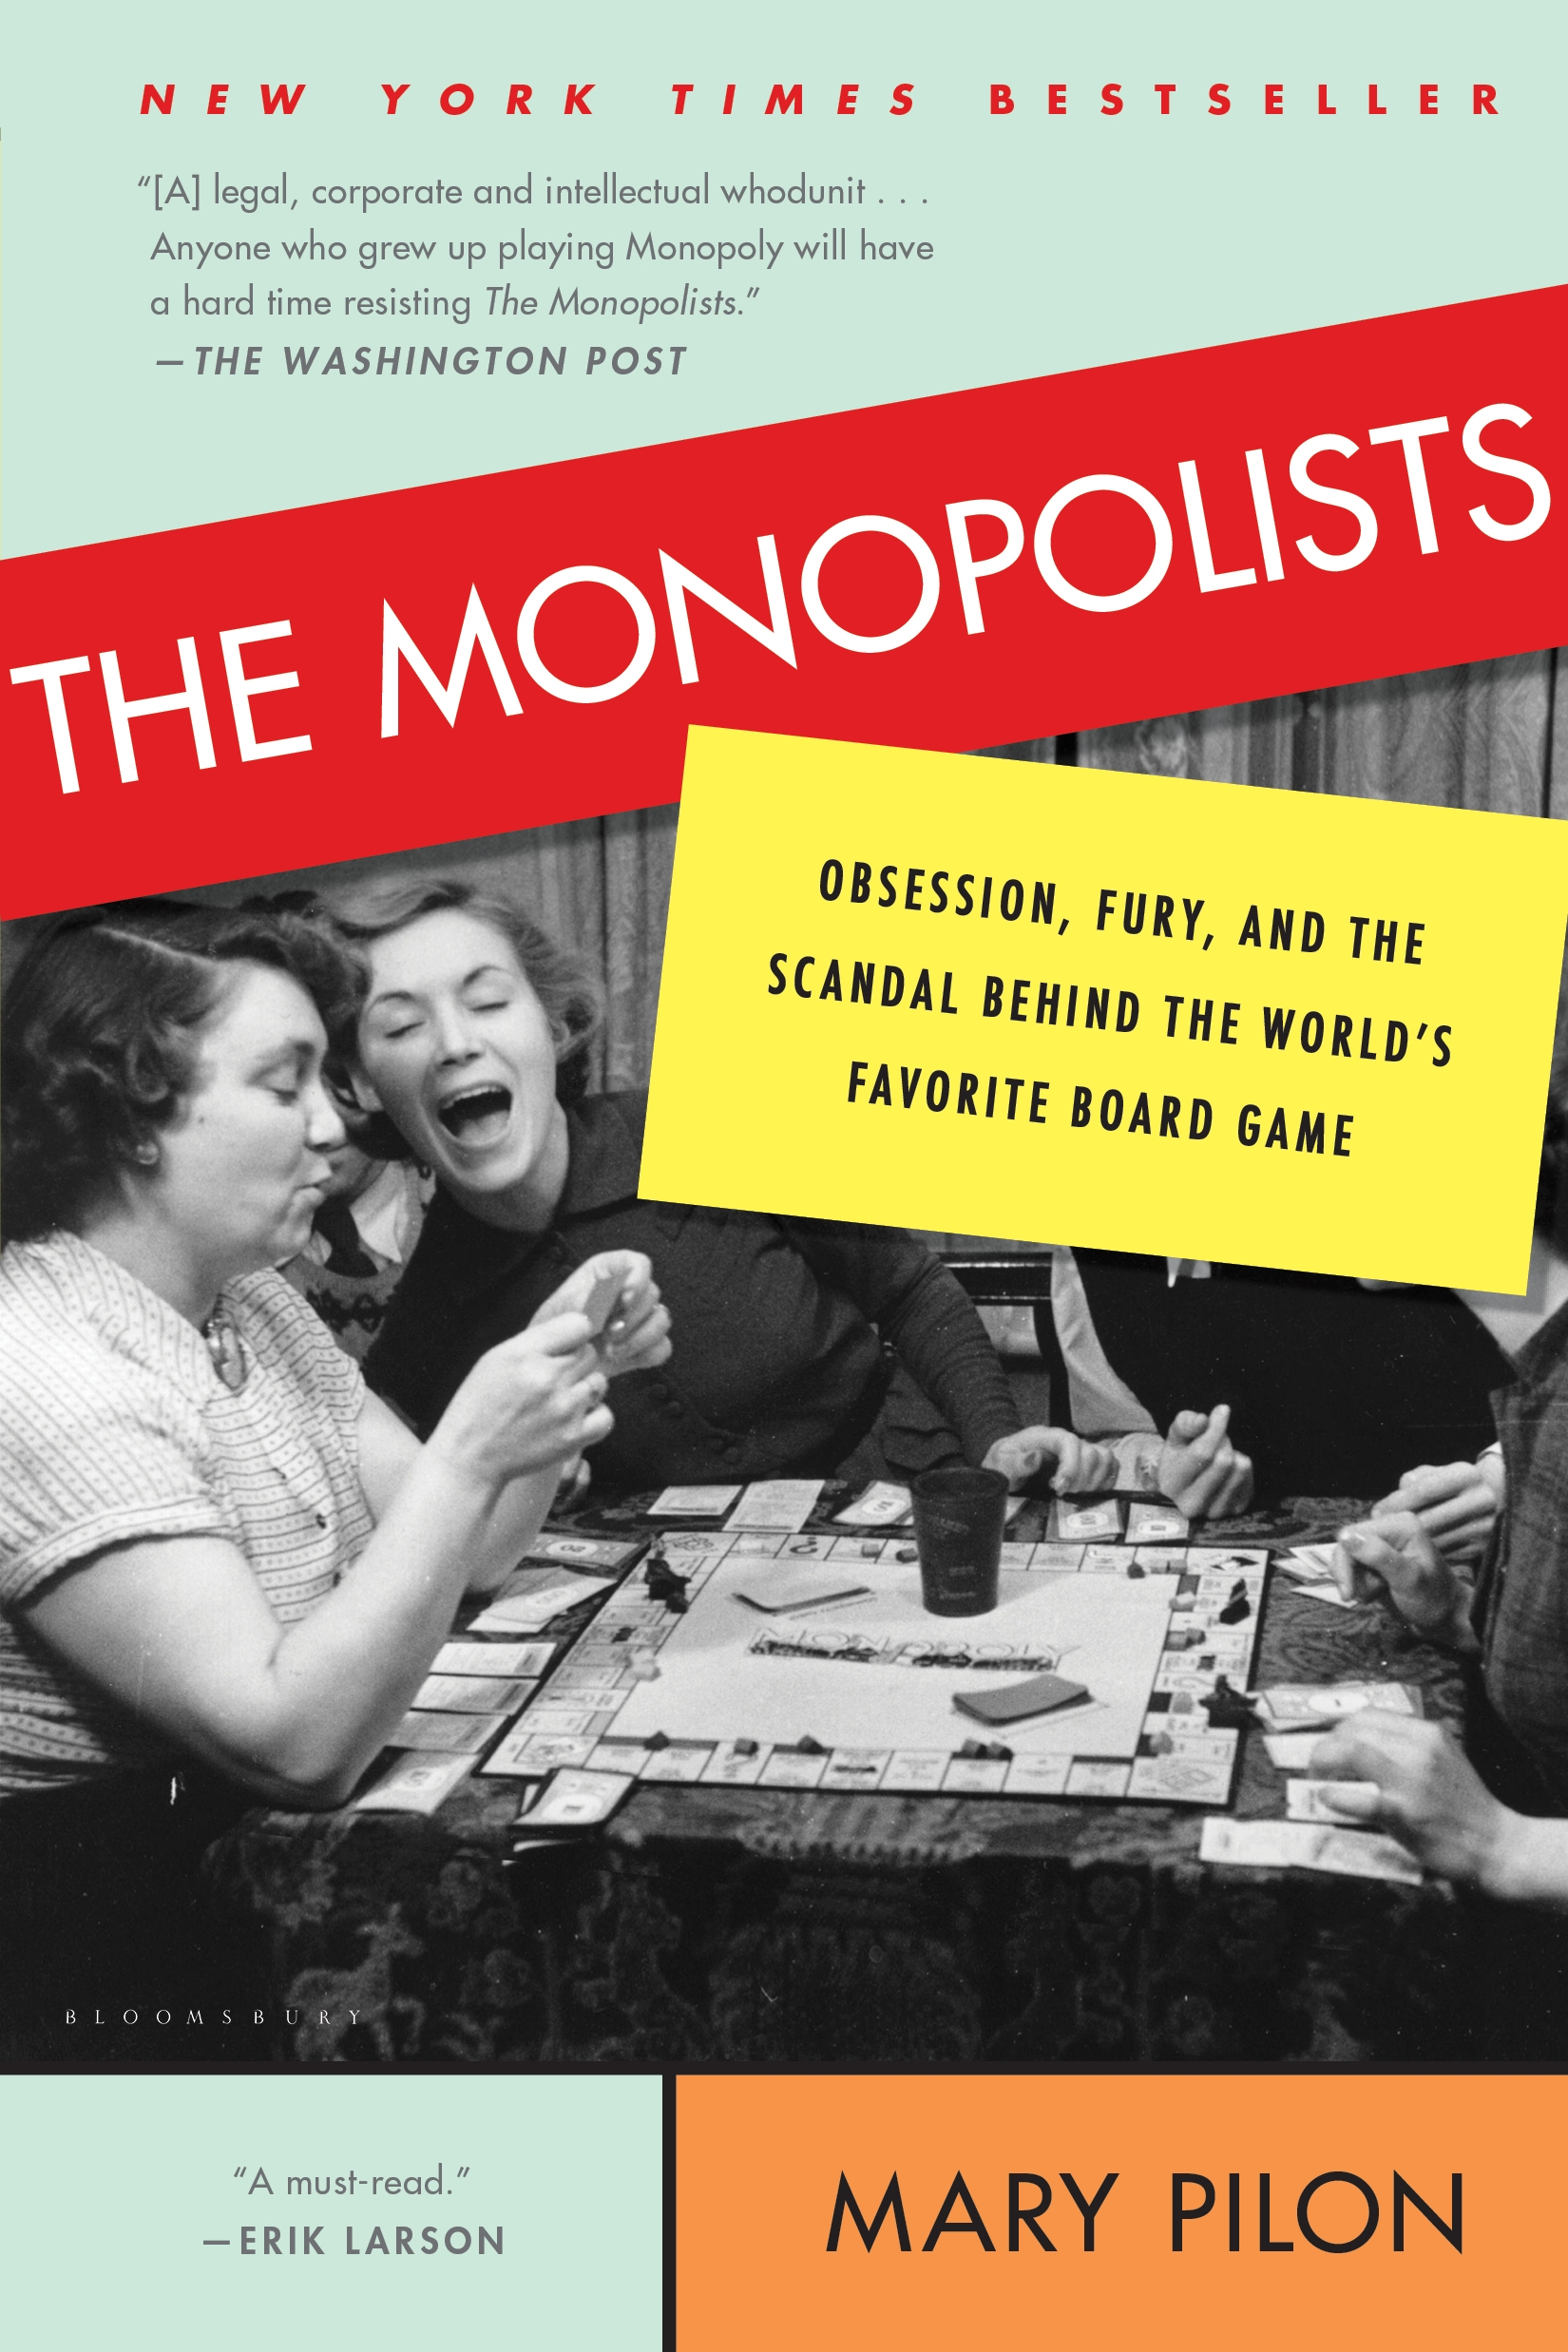 Book jacket,The Monopolists, by Mary Pilon